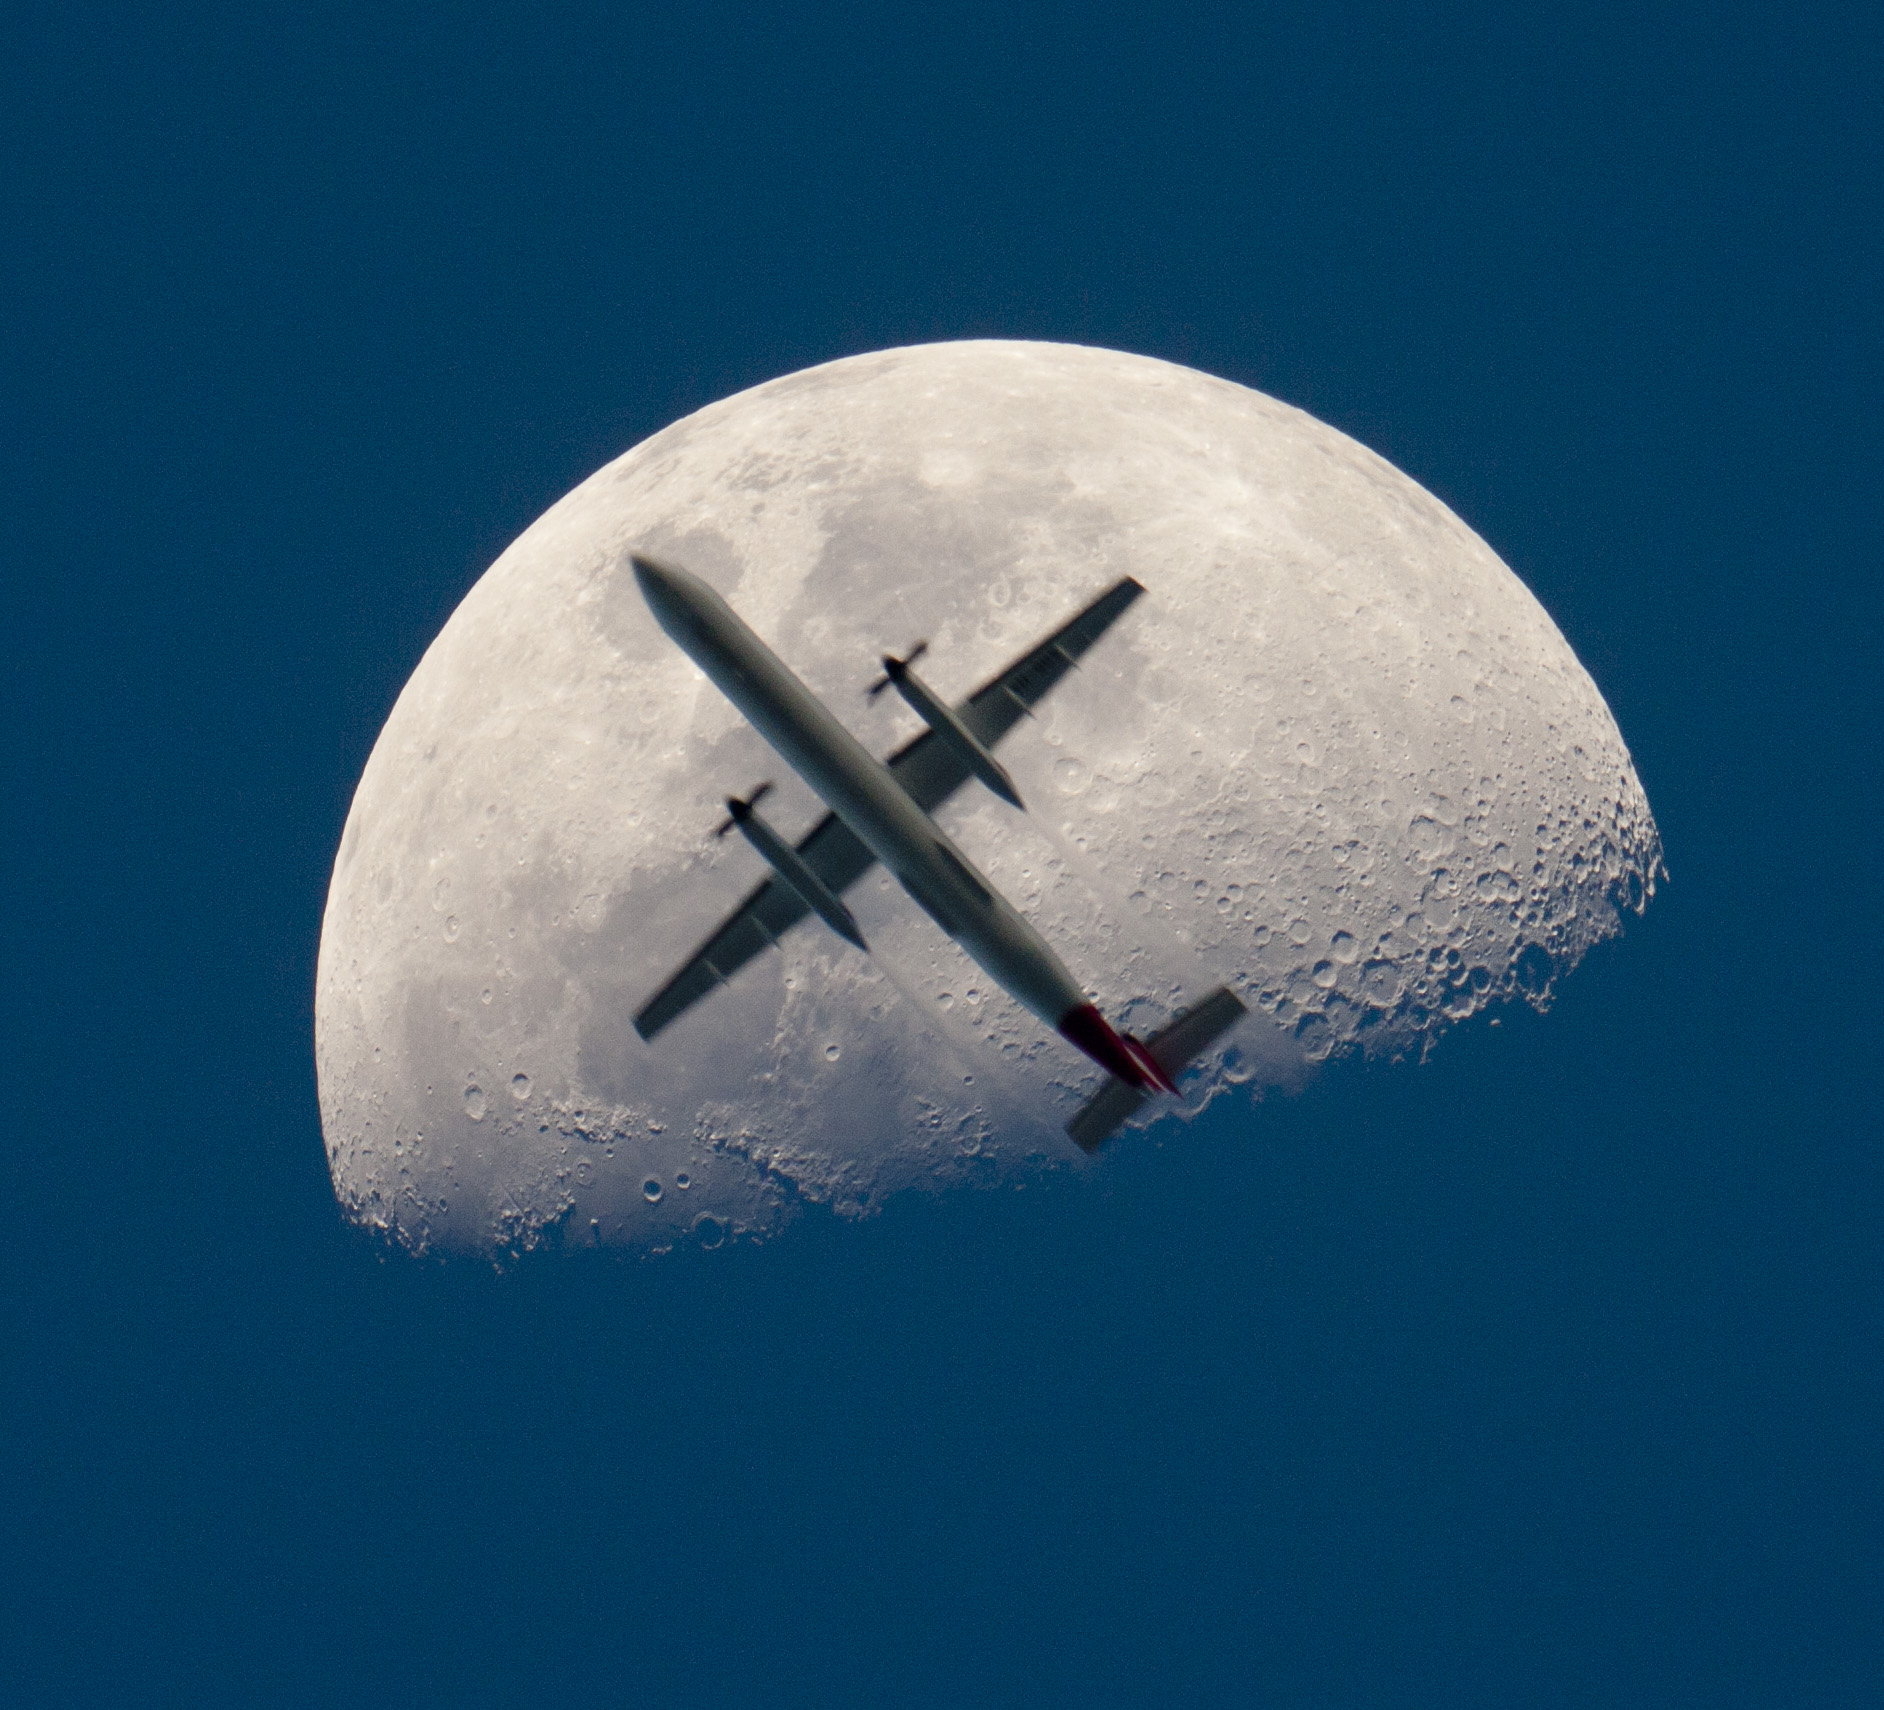 An Airplane in Front of the Moon. Credit & Copyright to Chris Thomas via APOD